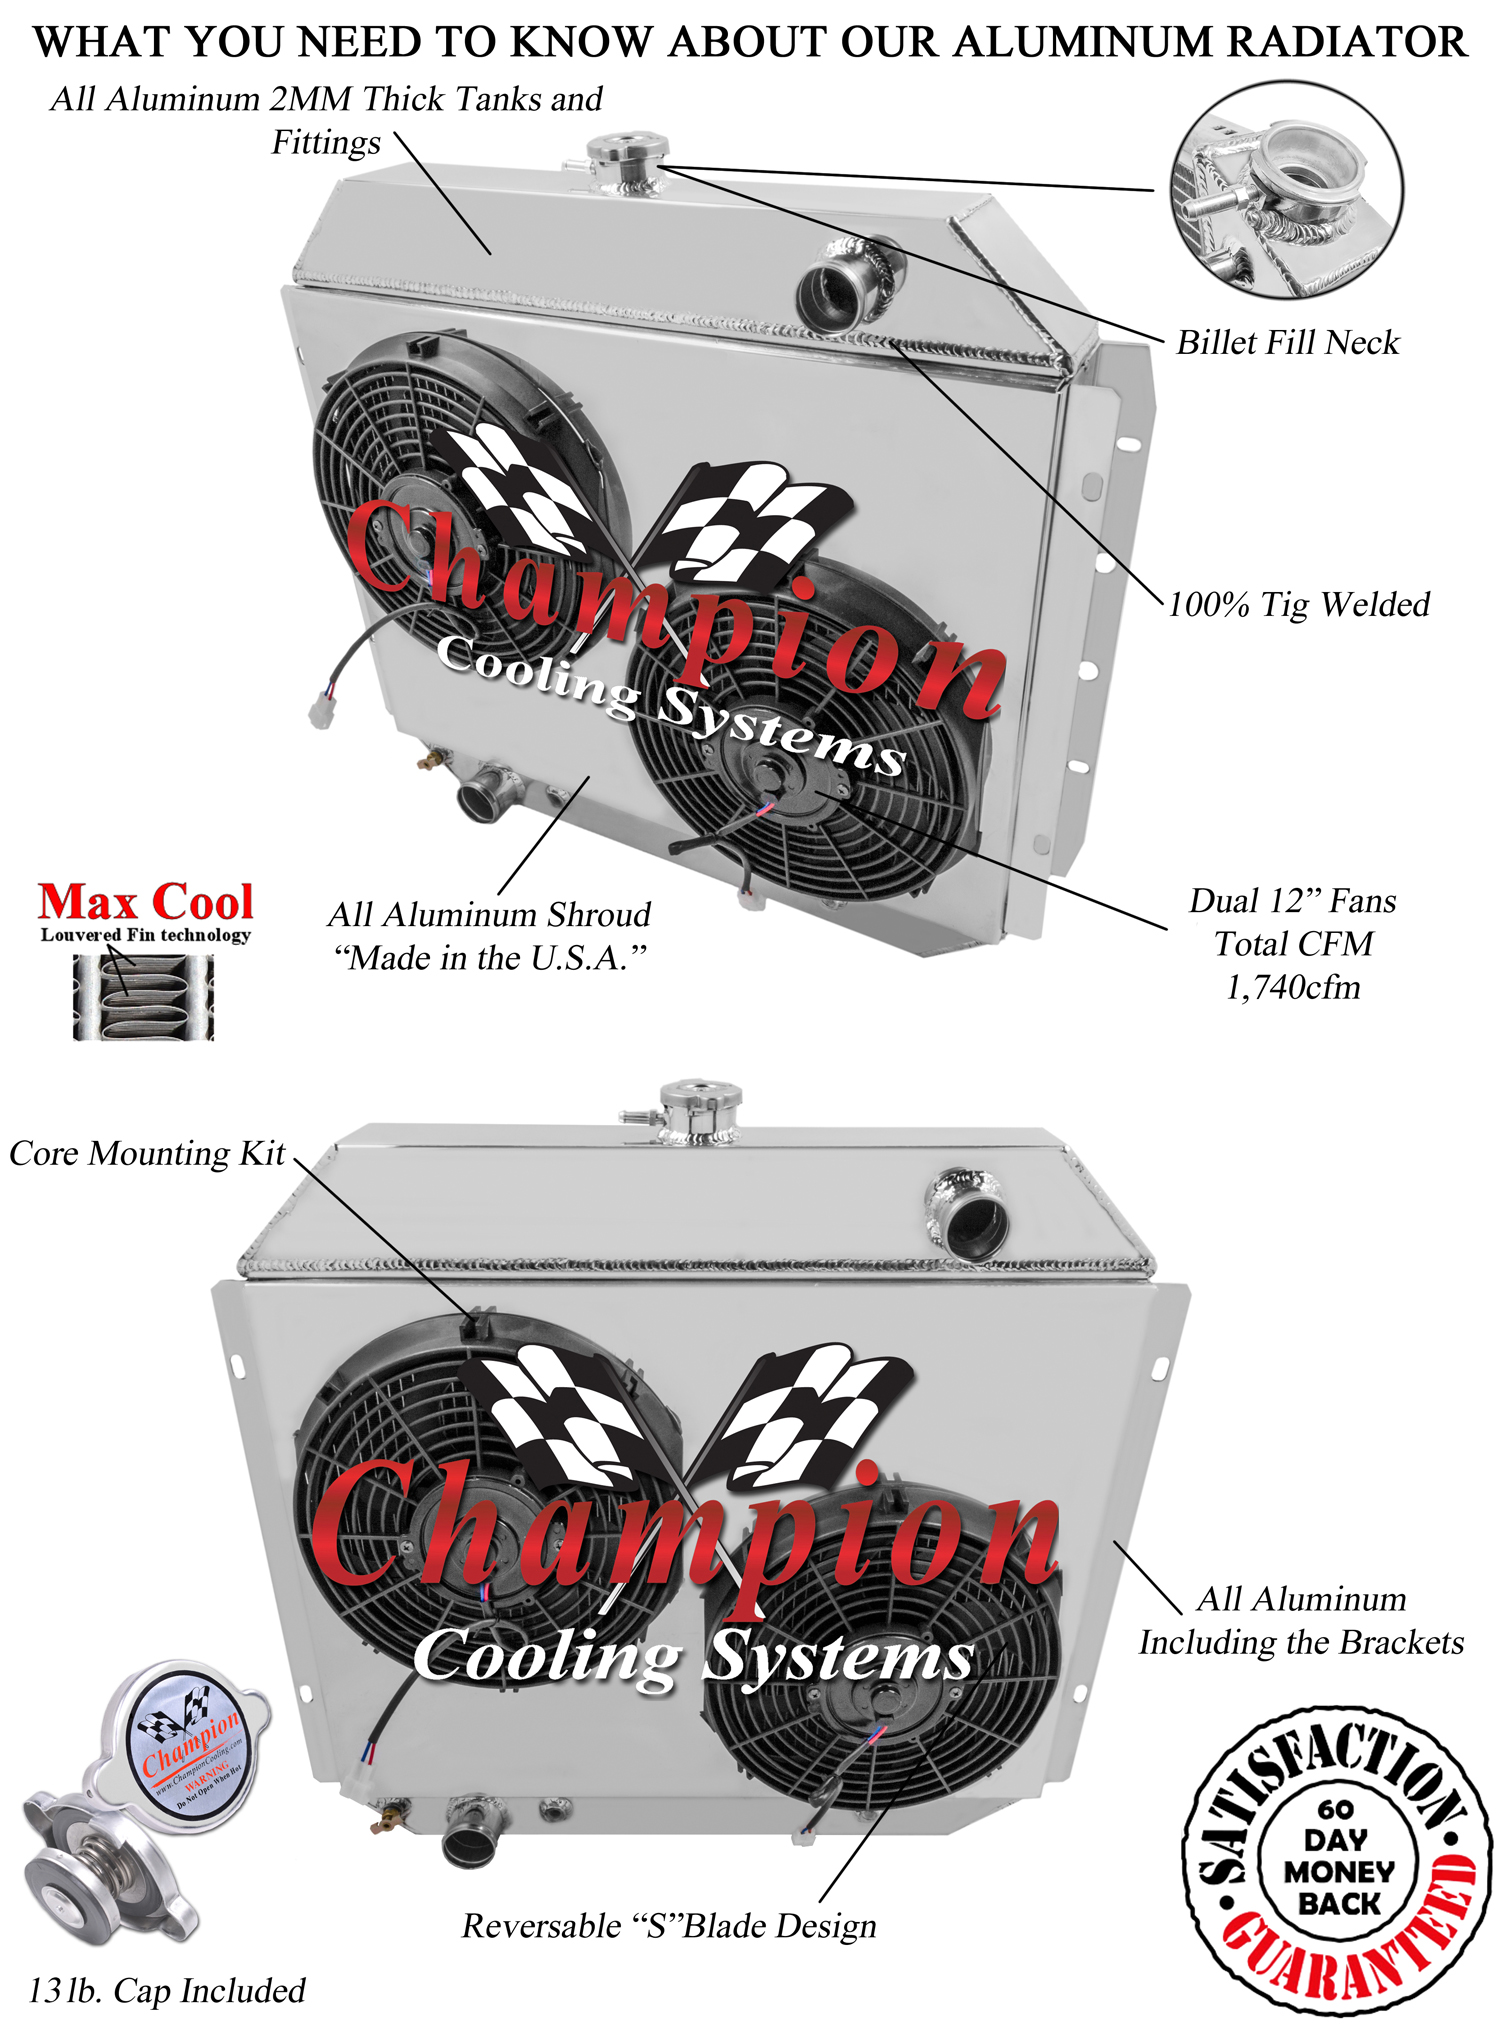 https://www.championcooling.com/photos/Photos%20White/With%20Fans/W-Shroud/433/433_Combo020.jpg